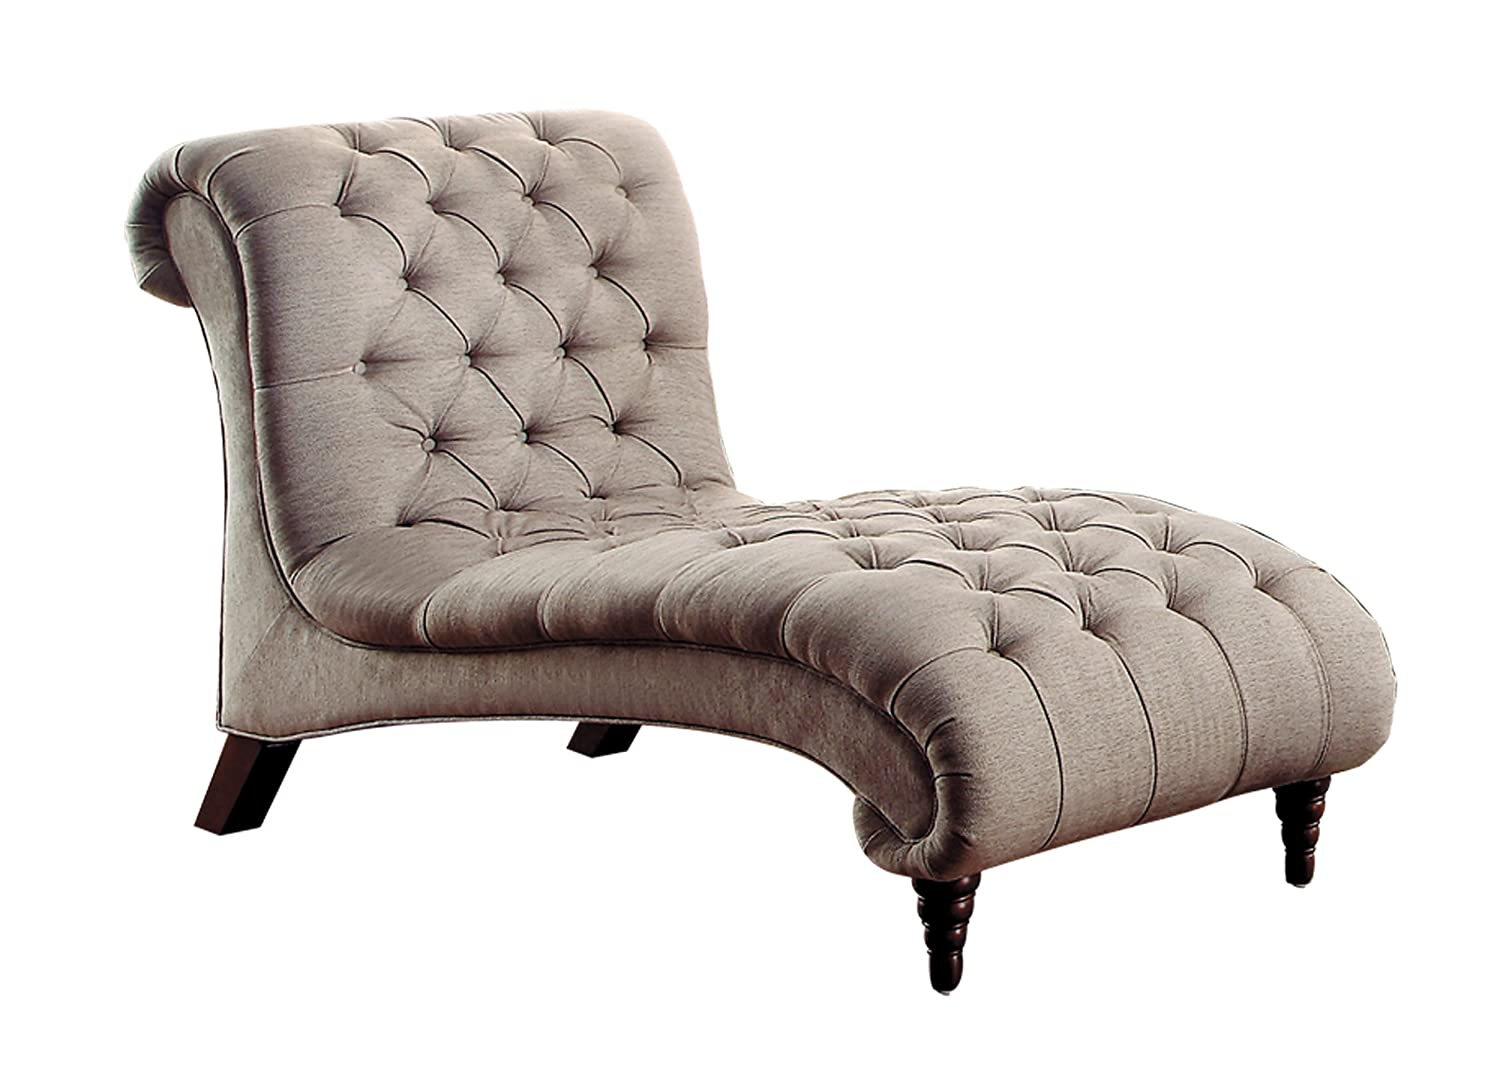 Homelegance Chesterfield Traditional Style Sofa with Tufted Design - Brown/Almond